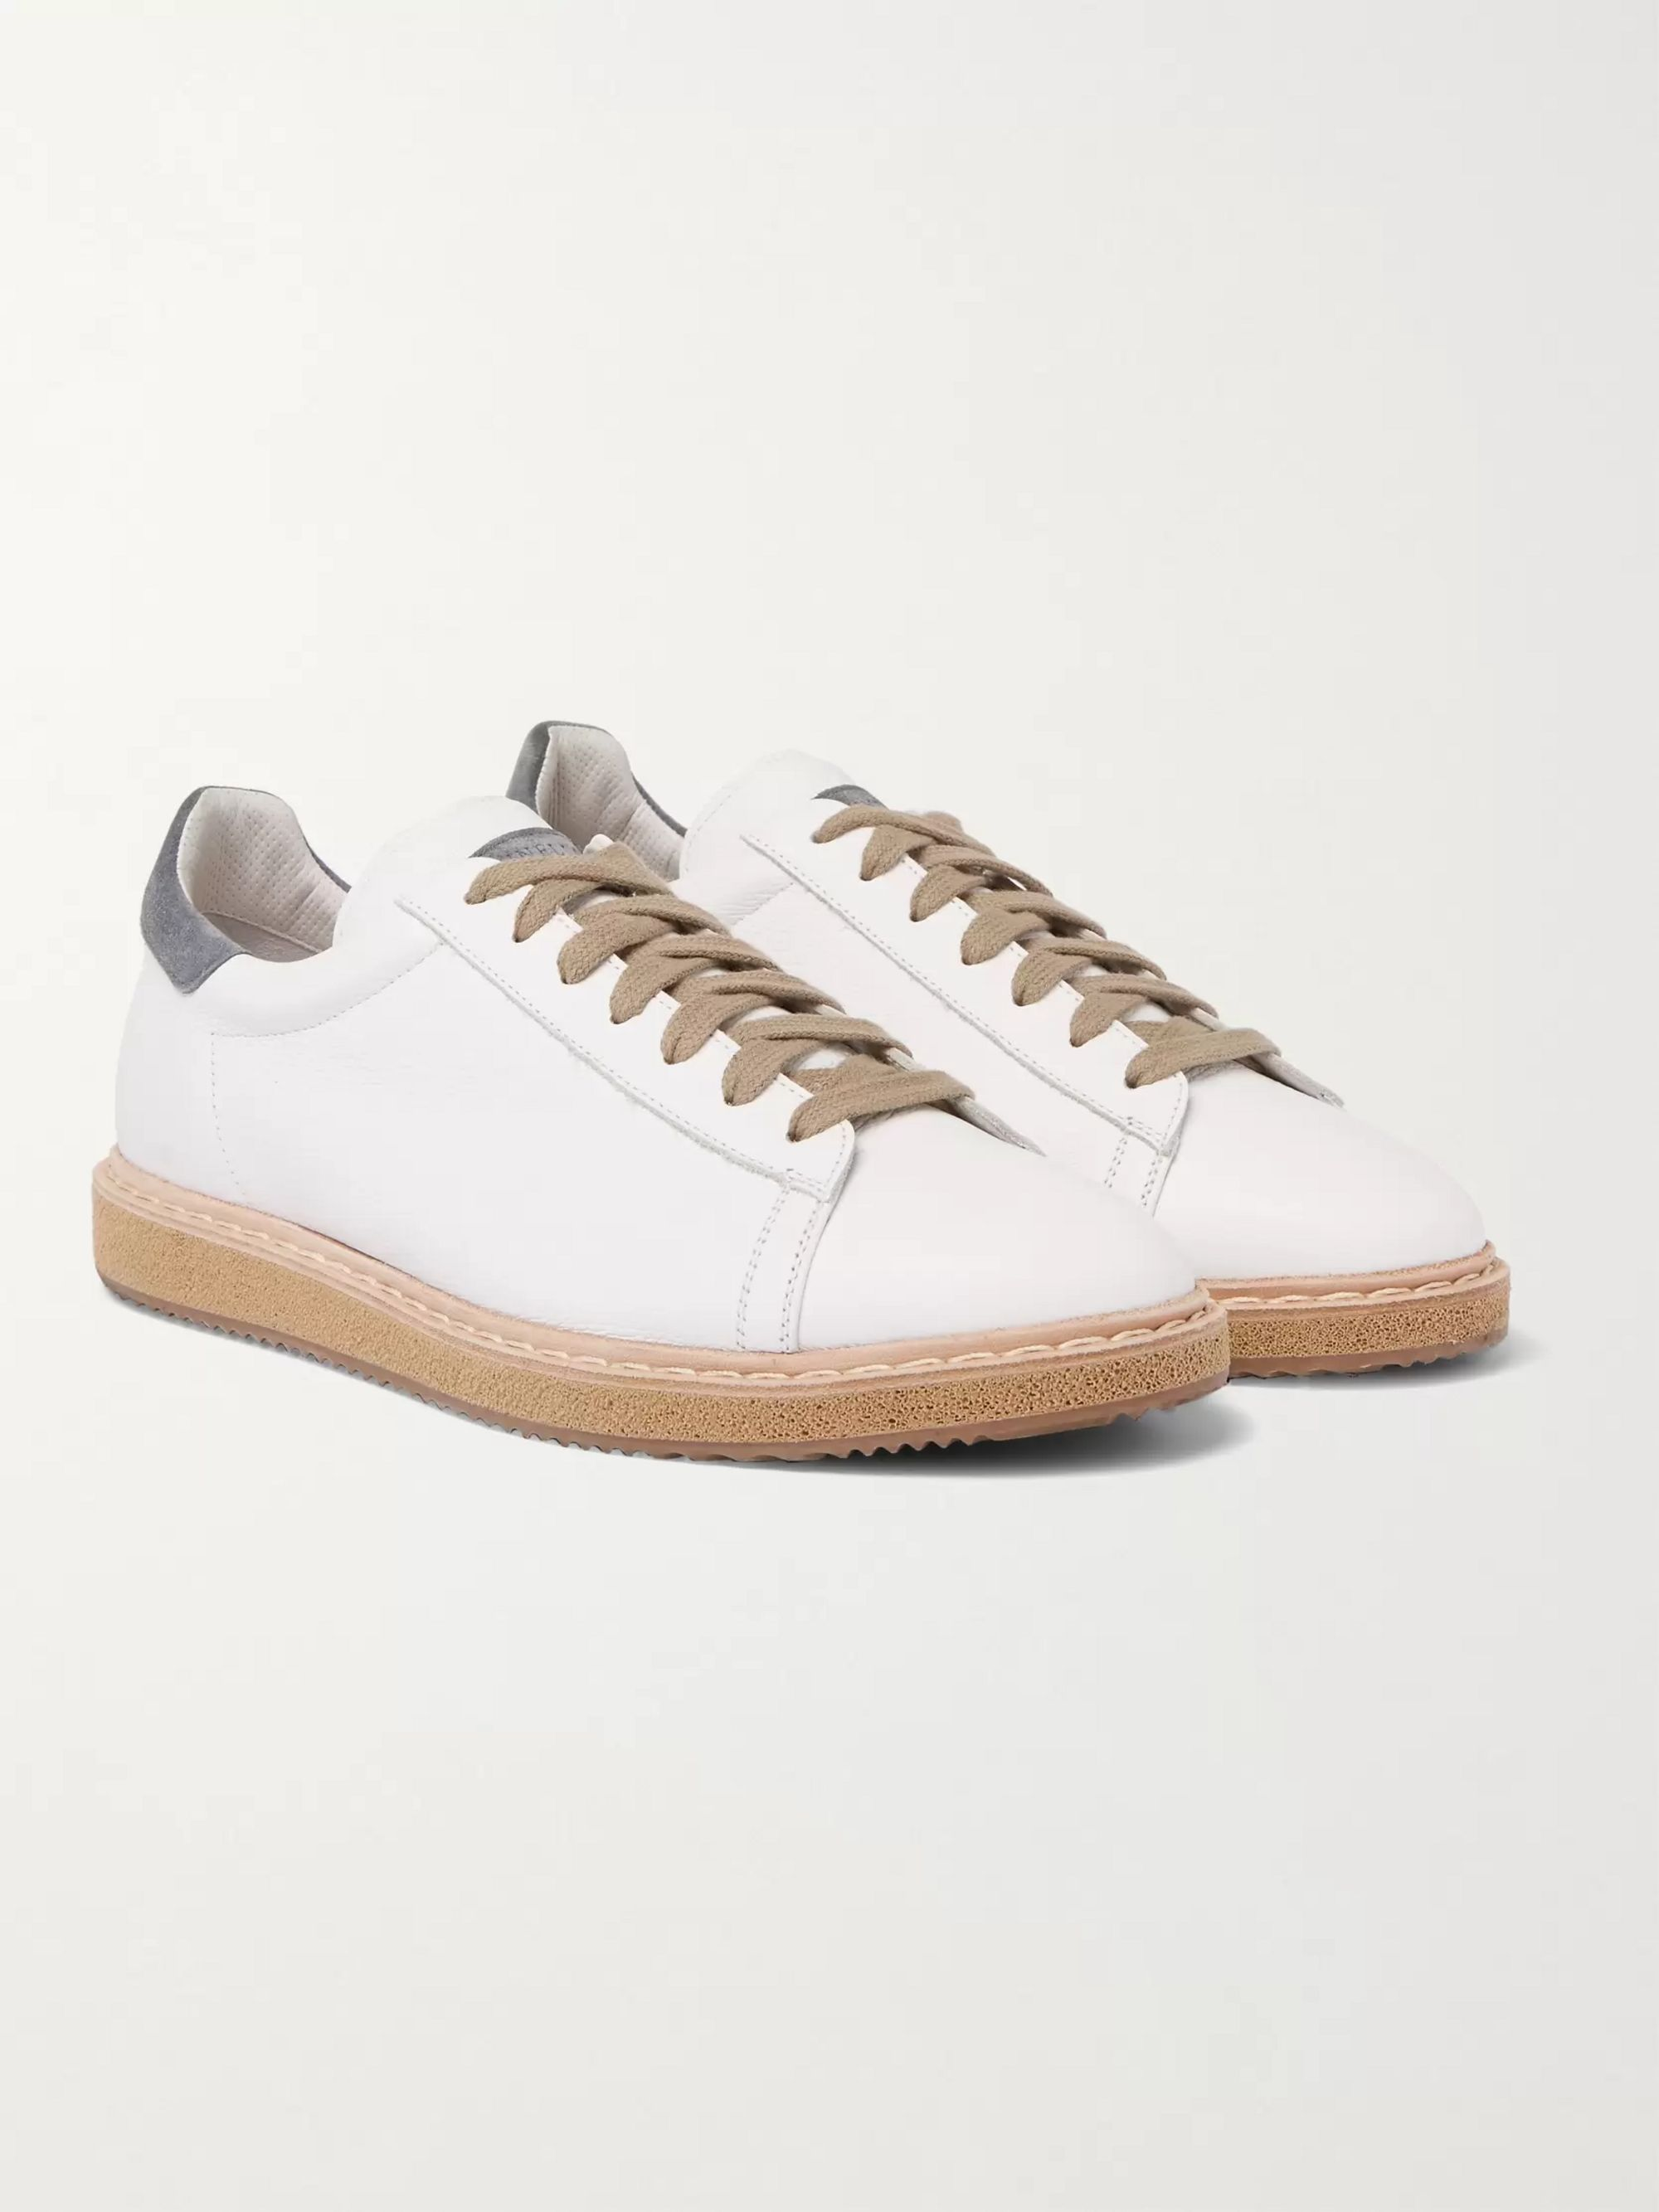 Brunello Cucinelli Suede-Trimmed Leather Sneakers